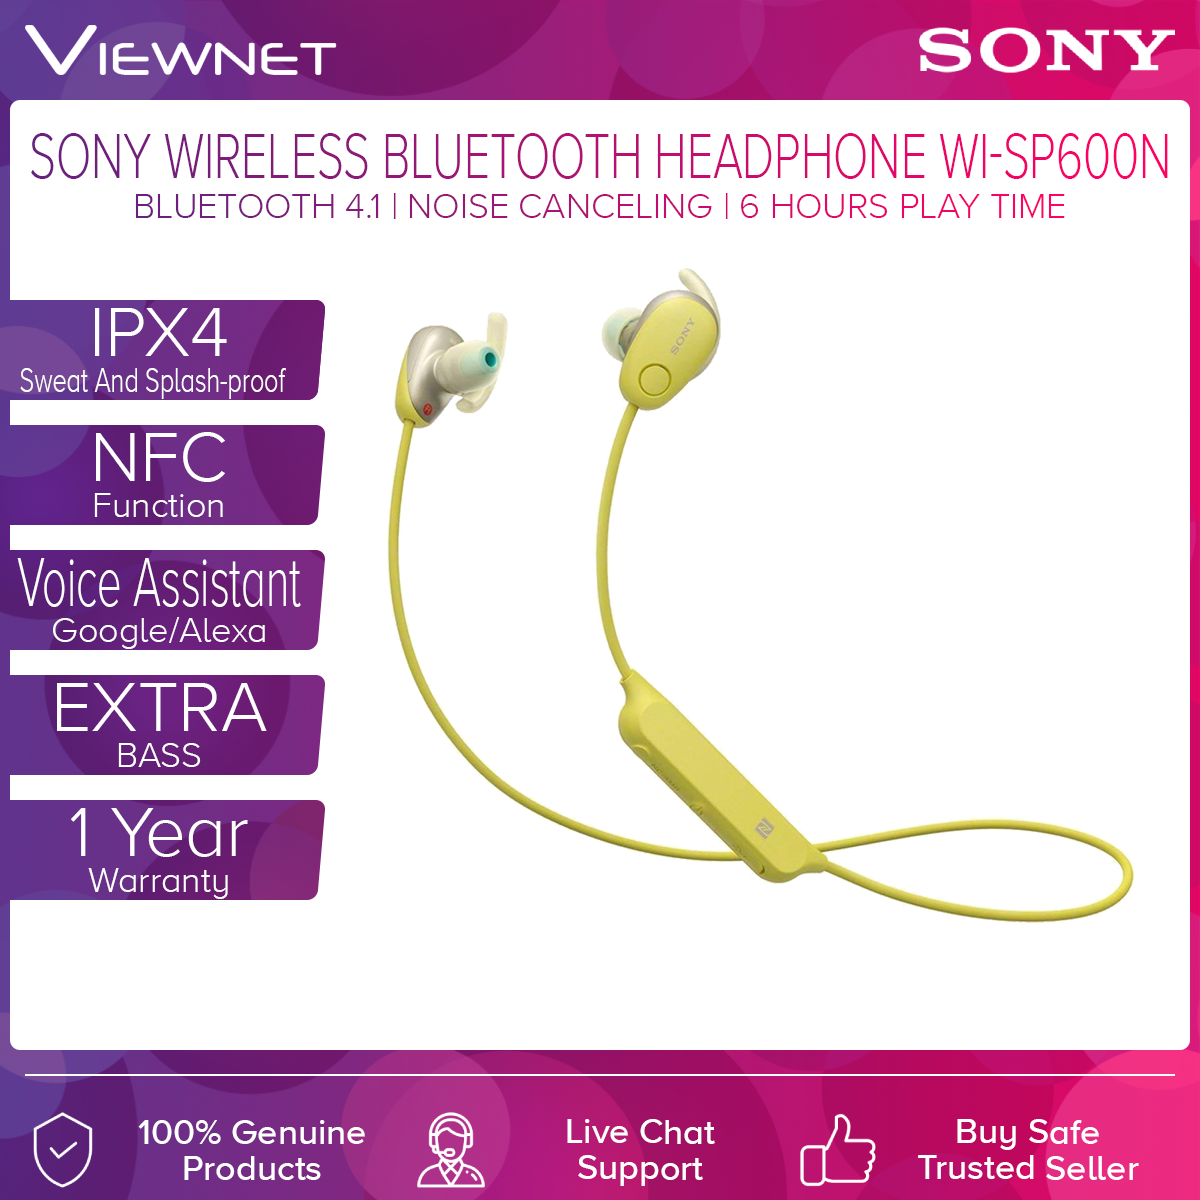 Sony WI-SP600N EXTRA BASS IPX4 Waterproof Wireless Bluetooth Noise Cancelling Sports In-ear Headphones (Black/White/Yellow/Pink) NFC, Hands-free Calling, Voice Assistant Compatible, Ambient Sound Mode (Normal/Voice), Up to 6 Hours Battery Life